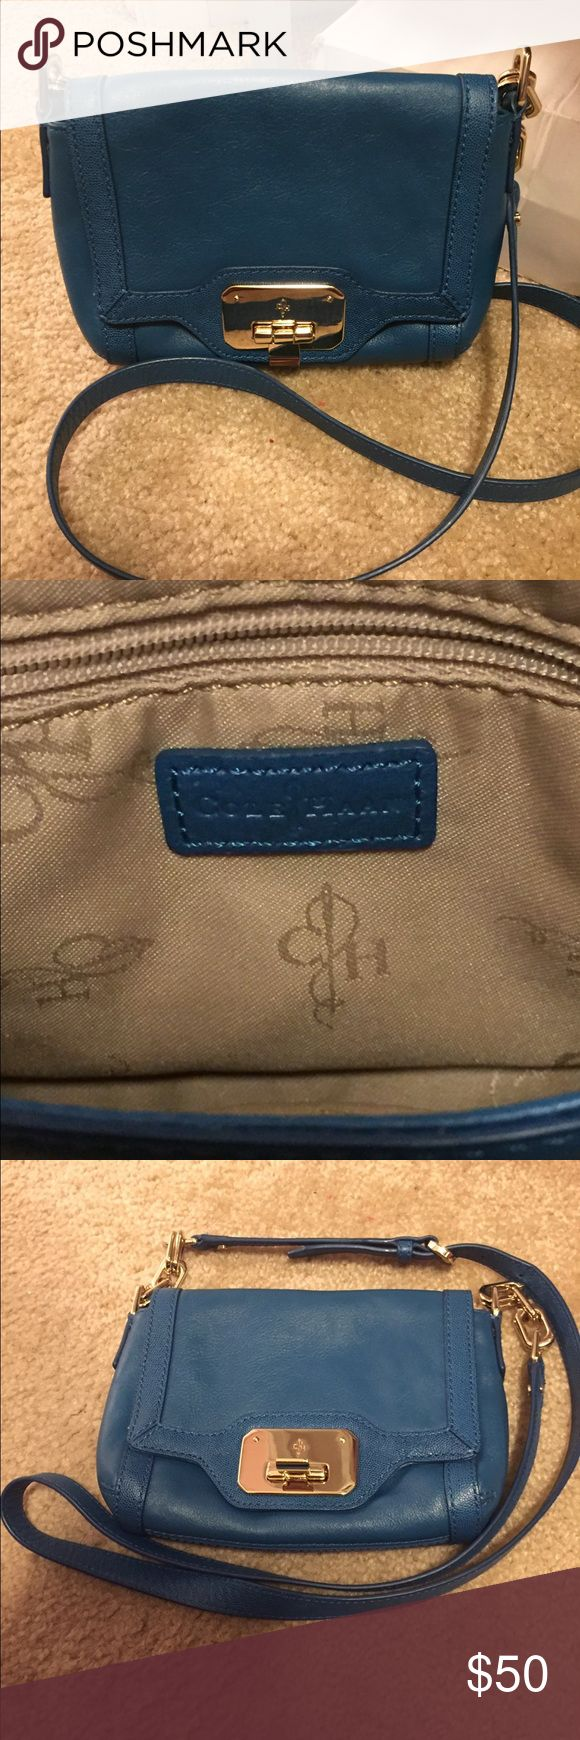 Cole Haan Crossbody Purse Never used without tags Cole Haan Crossbody Purse. Cole Haan Bags Crossbody Bags